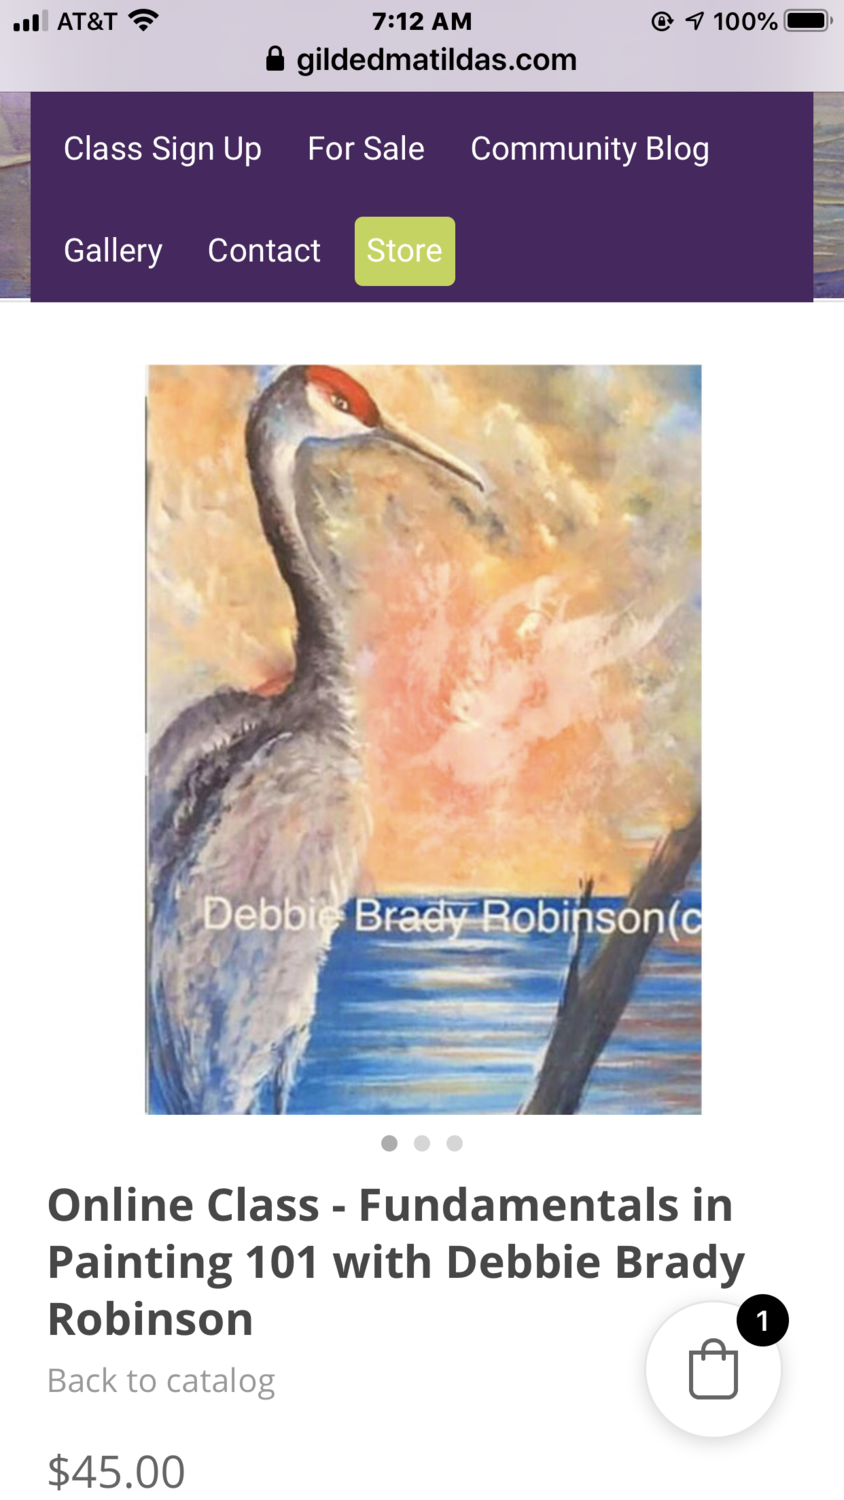 Online Class - Fundamentals in Painting 101 with Debbie Brady Robinson